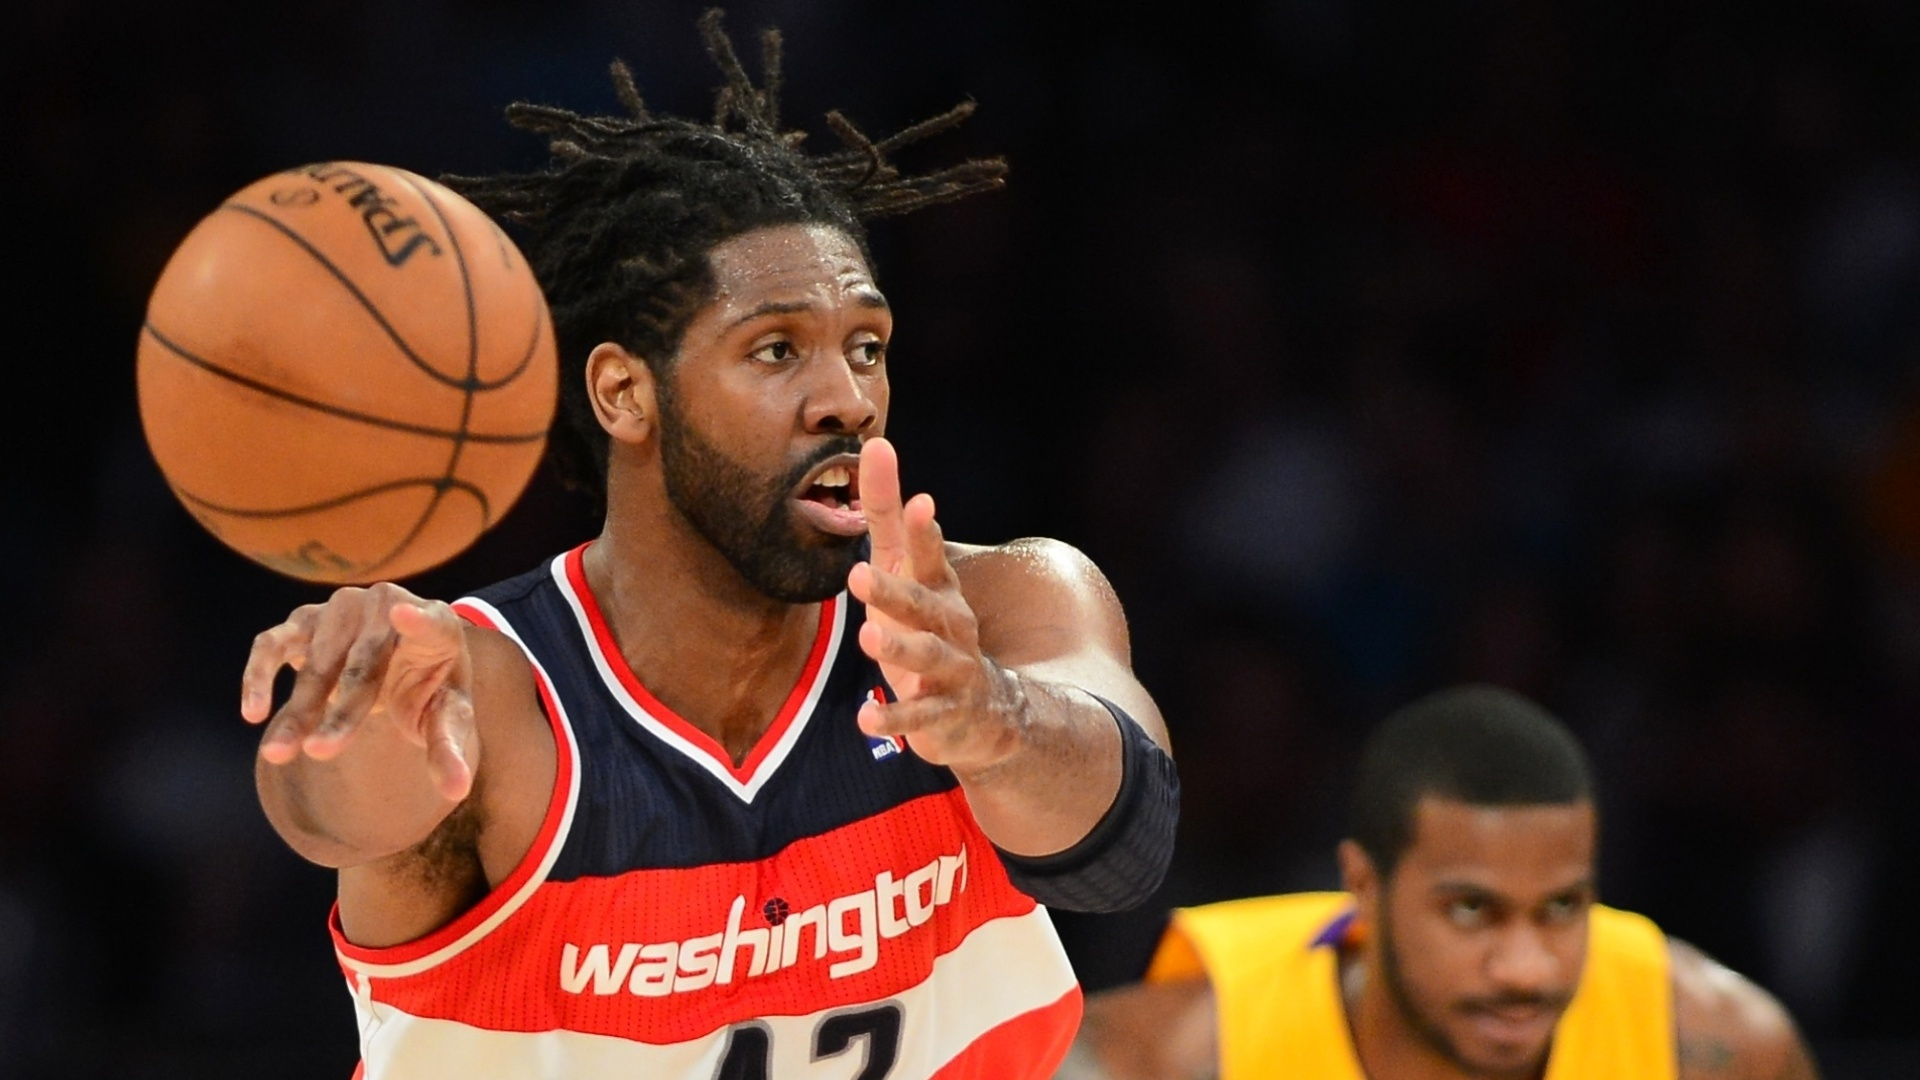 23.mar.2013 - Pivô brasileiro Nenê passa a bola e arma ataque do Washington Wizards na partida contra o Los Angeles Lakers